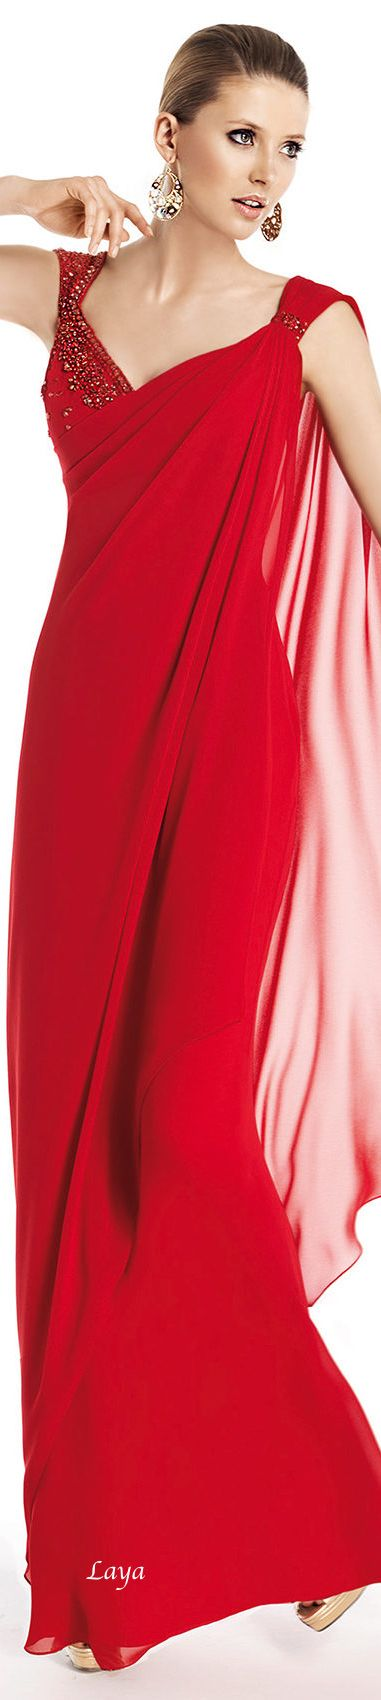 Red Evening dress-Pronovias 2014  available in our boutique :) http://www.pinterest.com/nadiouchcka/did-you-say-red/